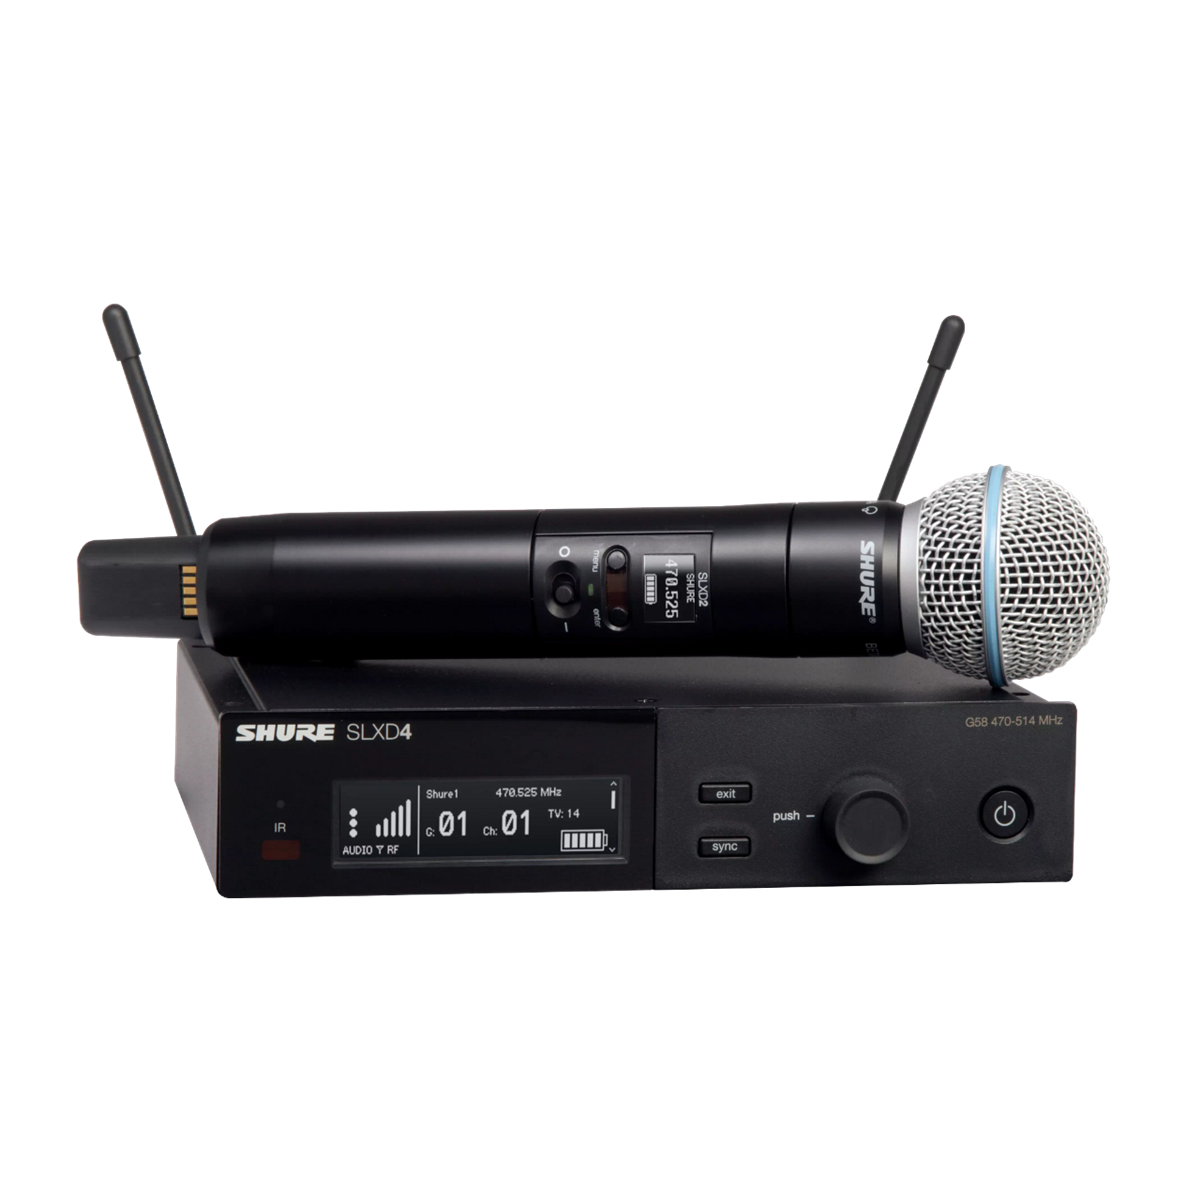 Shure SLX-D Handheld System BETA58A Microphone - 823-865MHz